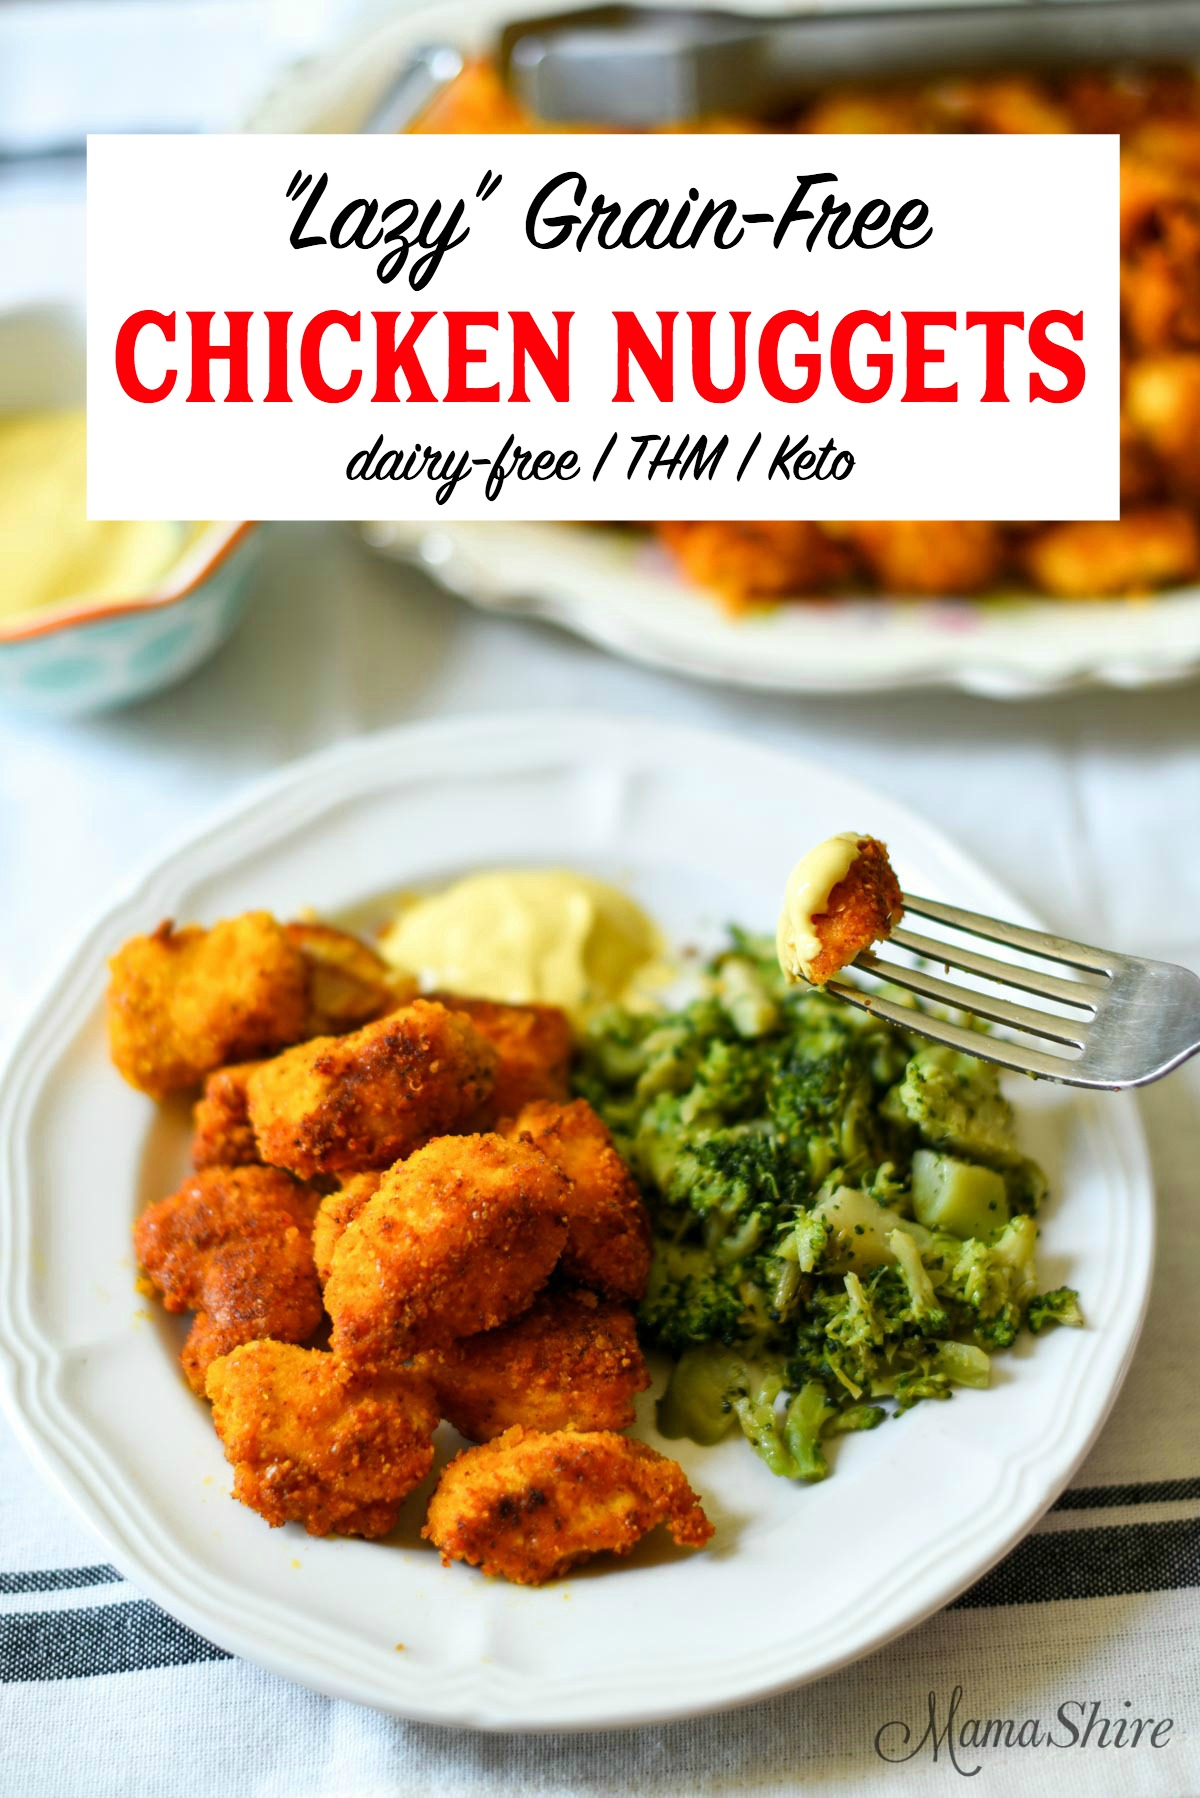 Lazy Grain-free chicken nuggets served with broccoli.